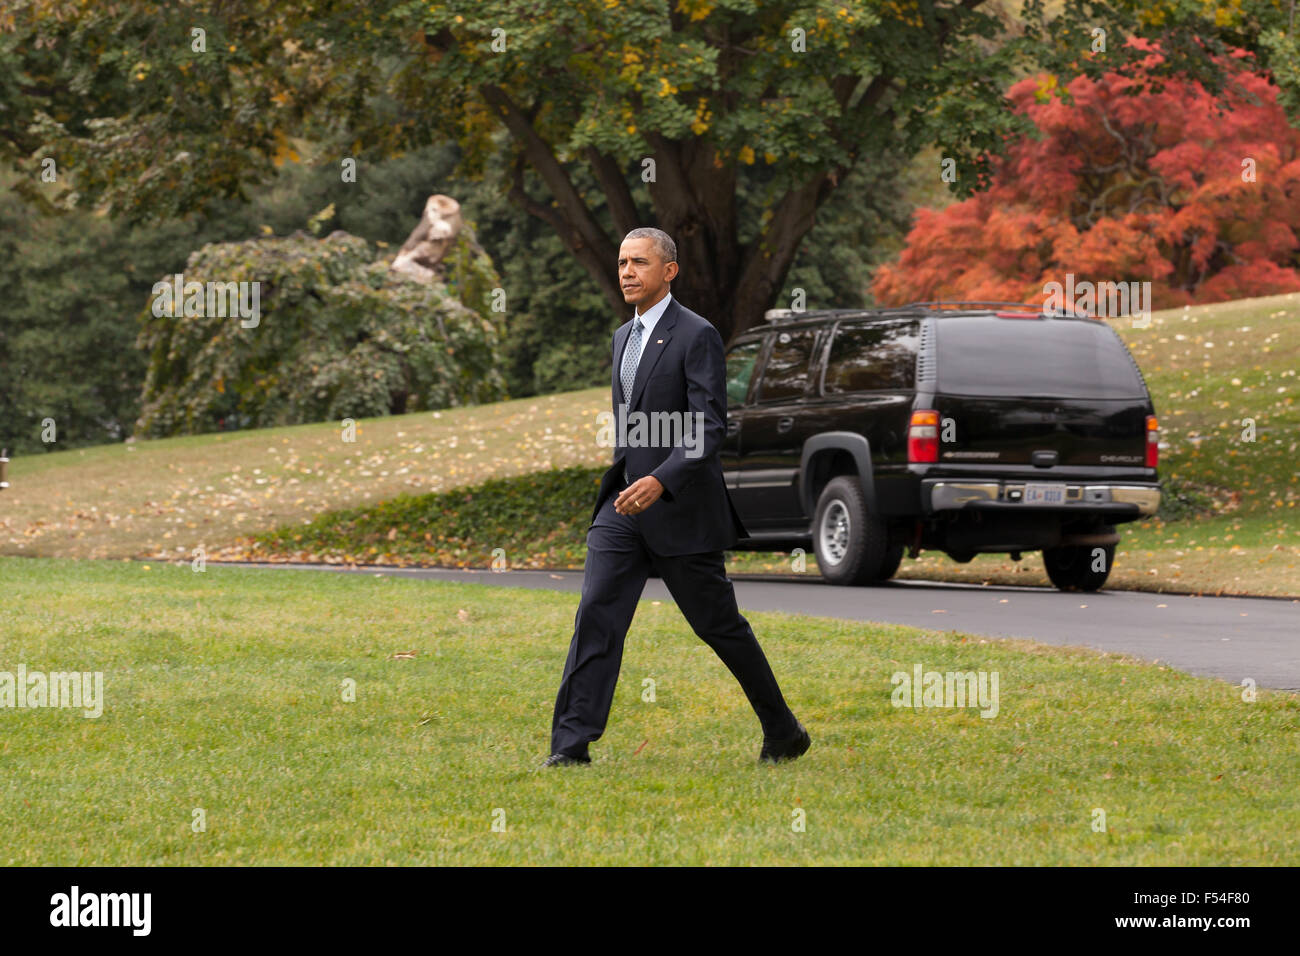 Washington, DC, USA. 27th October, 2015. President Obama boarding Marine One helicopter  on the South Lawn of the - Stock Image